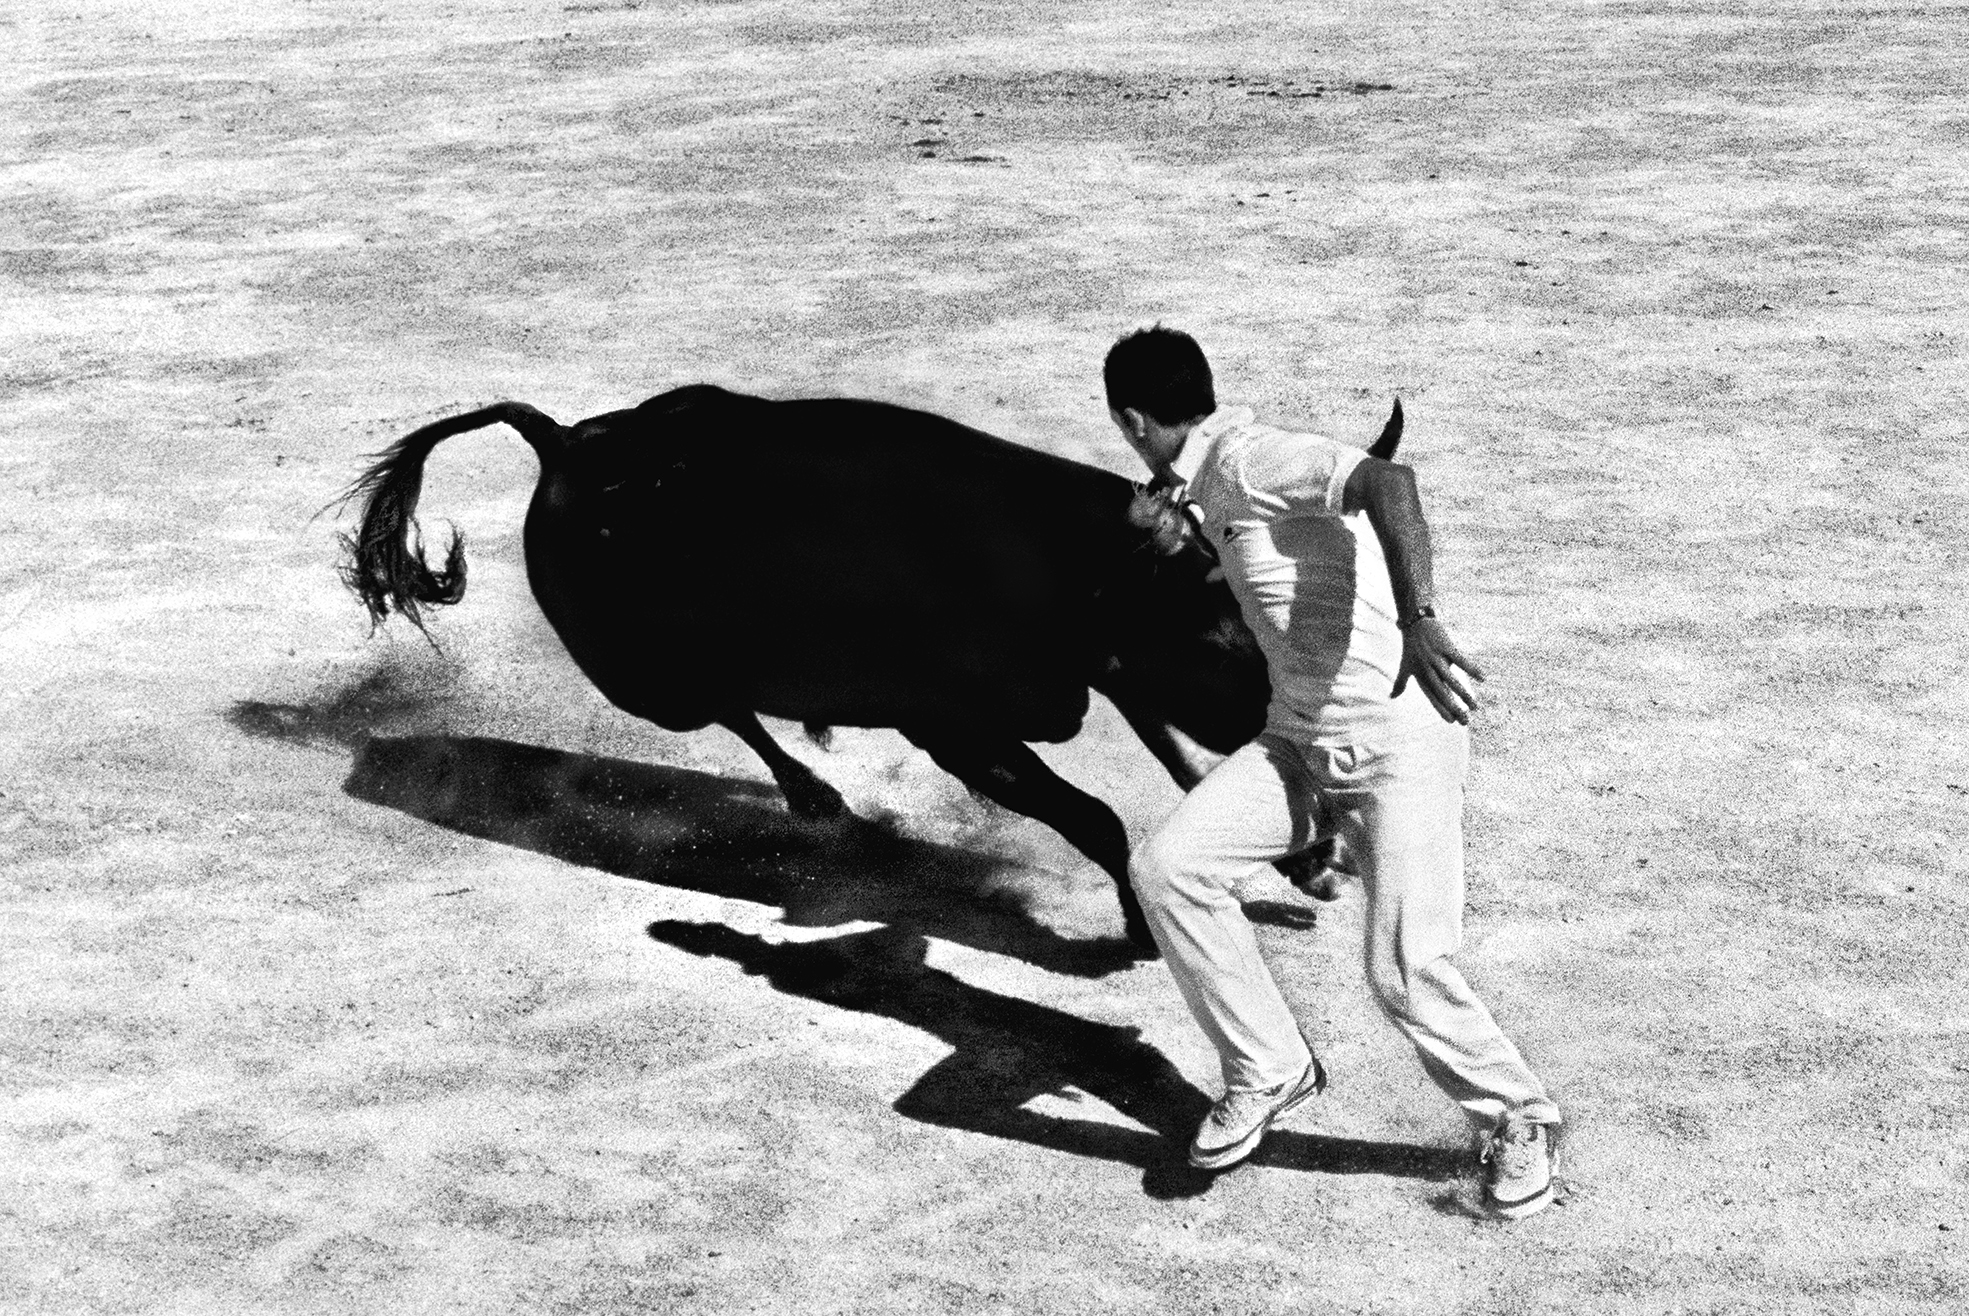 (Untitled, After Picasso) Course Camarguaise